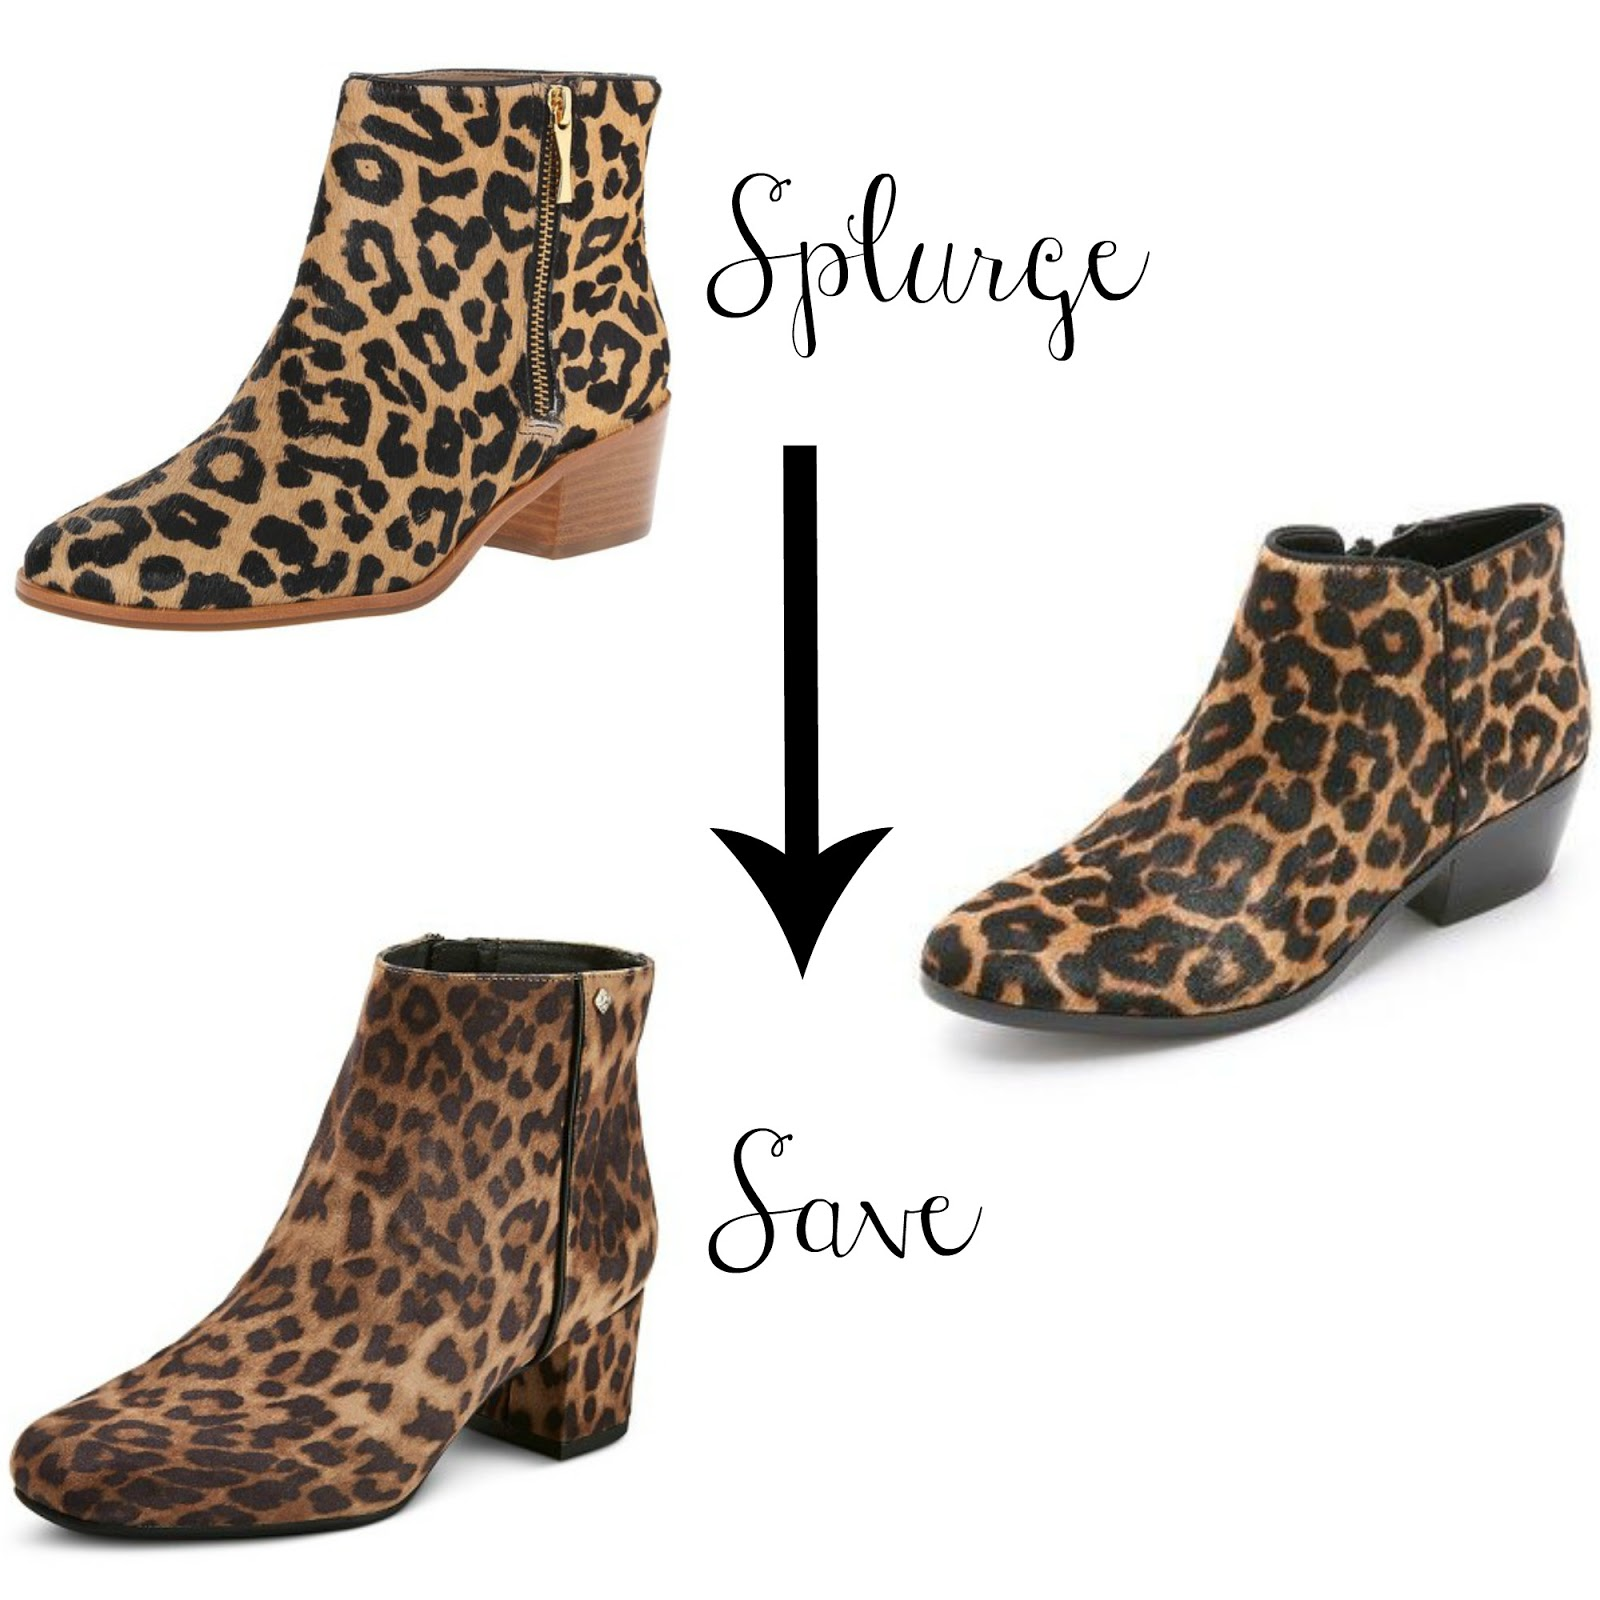 7f943edd6 There s even an option for leopard print rain booties—I can personally  vouch for these as one of my all time favorite shoes and a pair that ...